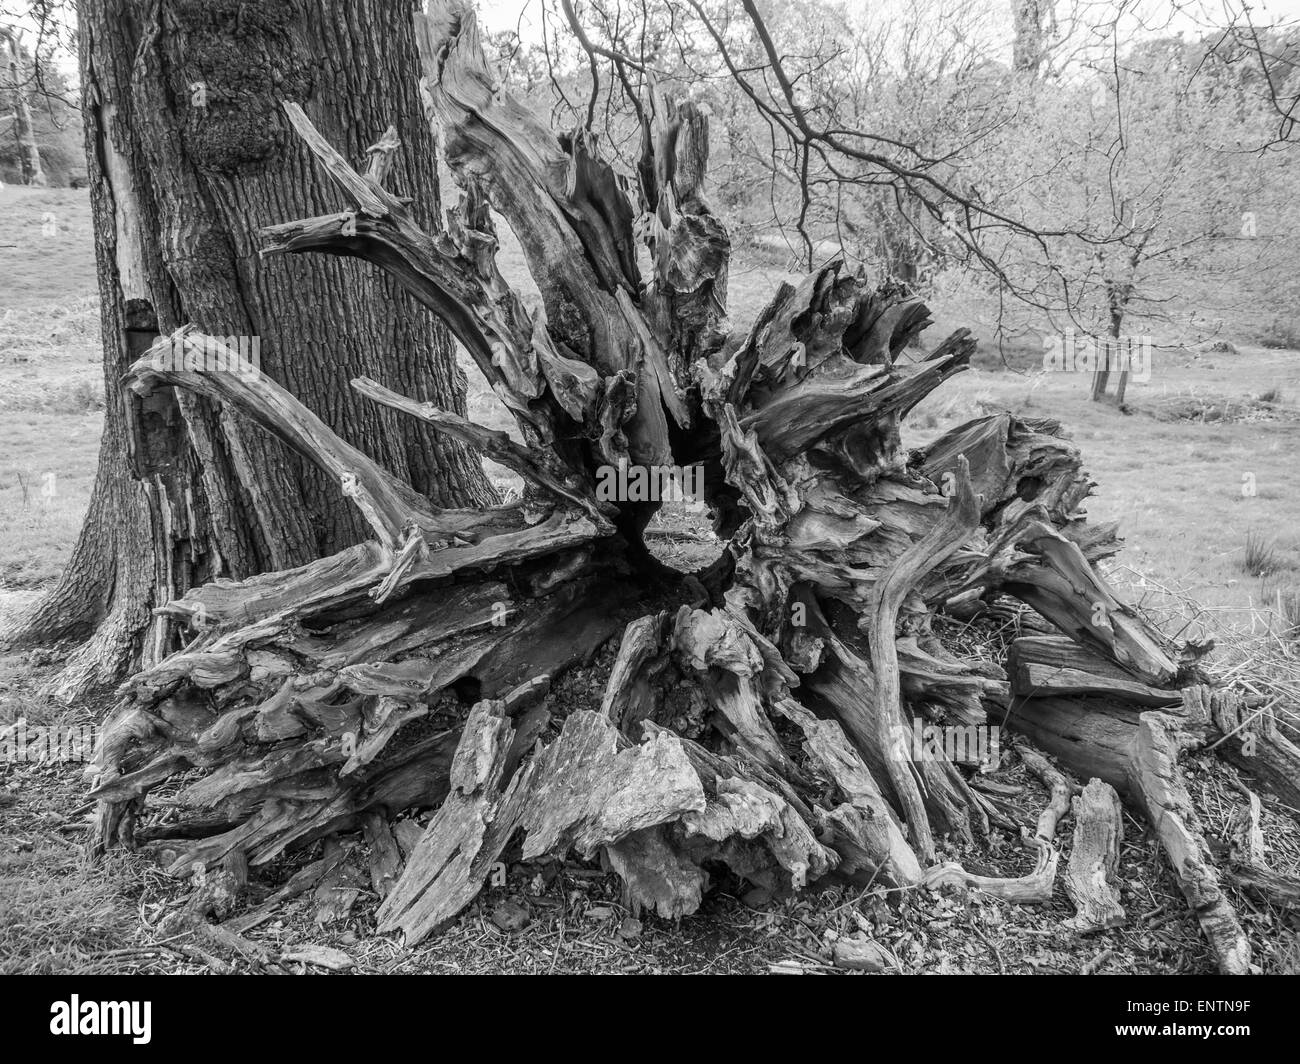 Fallen oak tree root in black and white - Stock Image